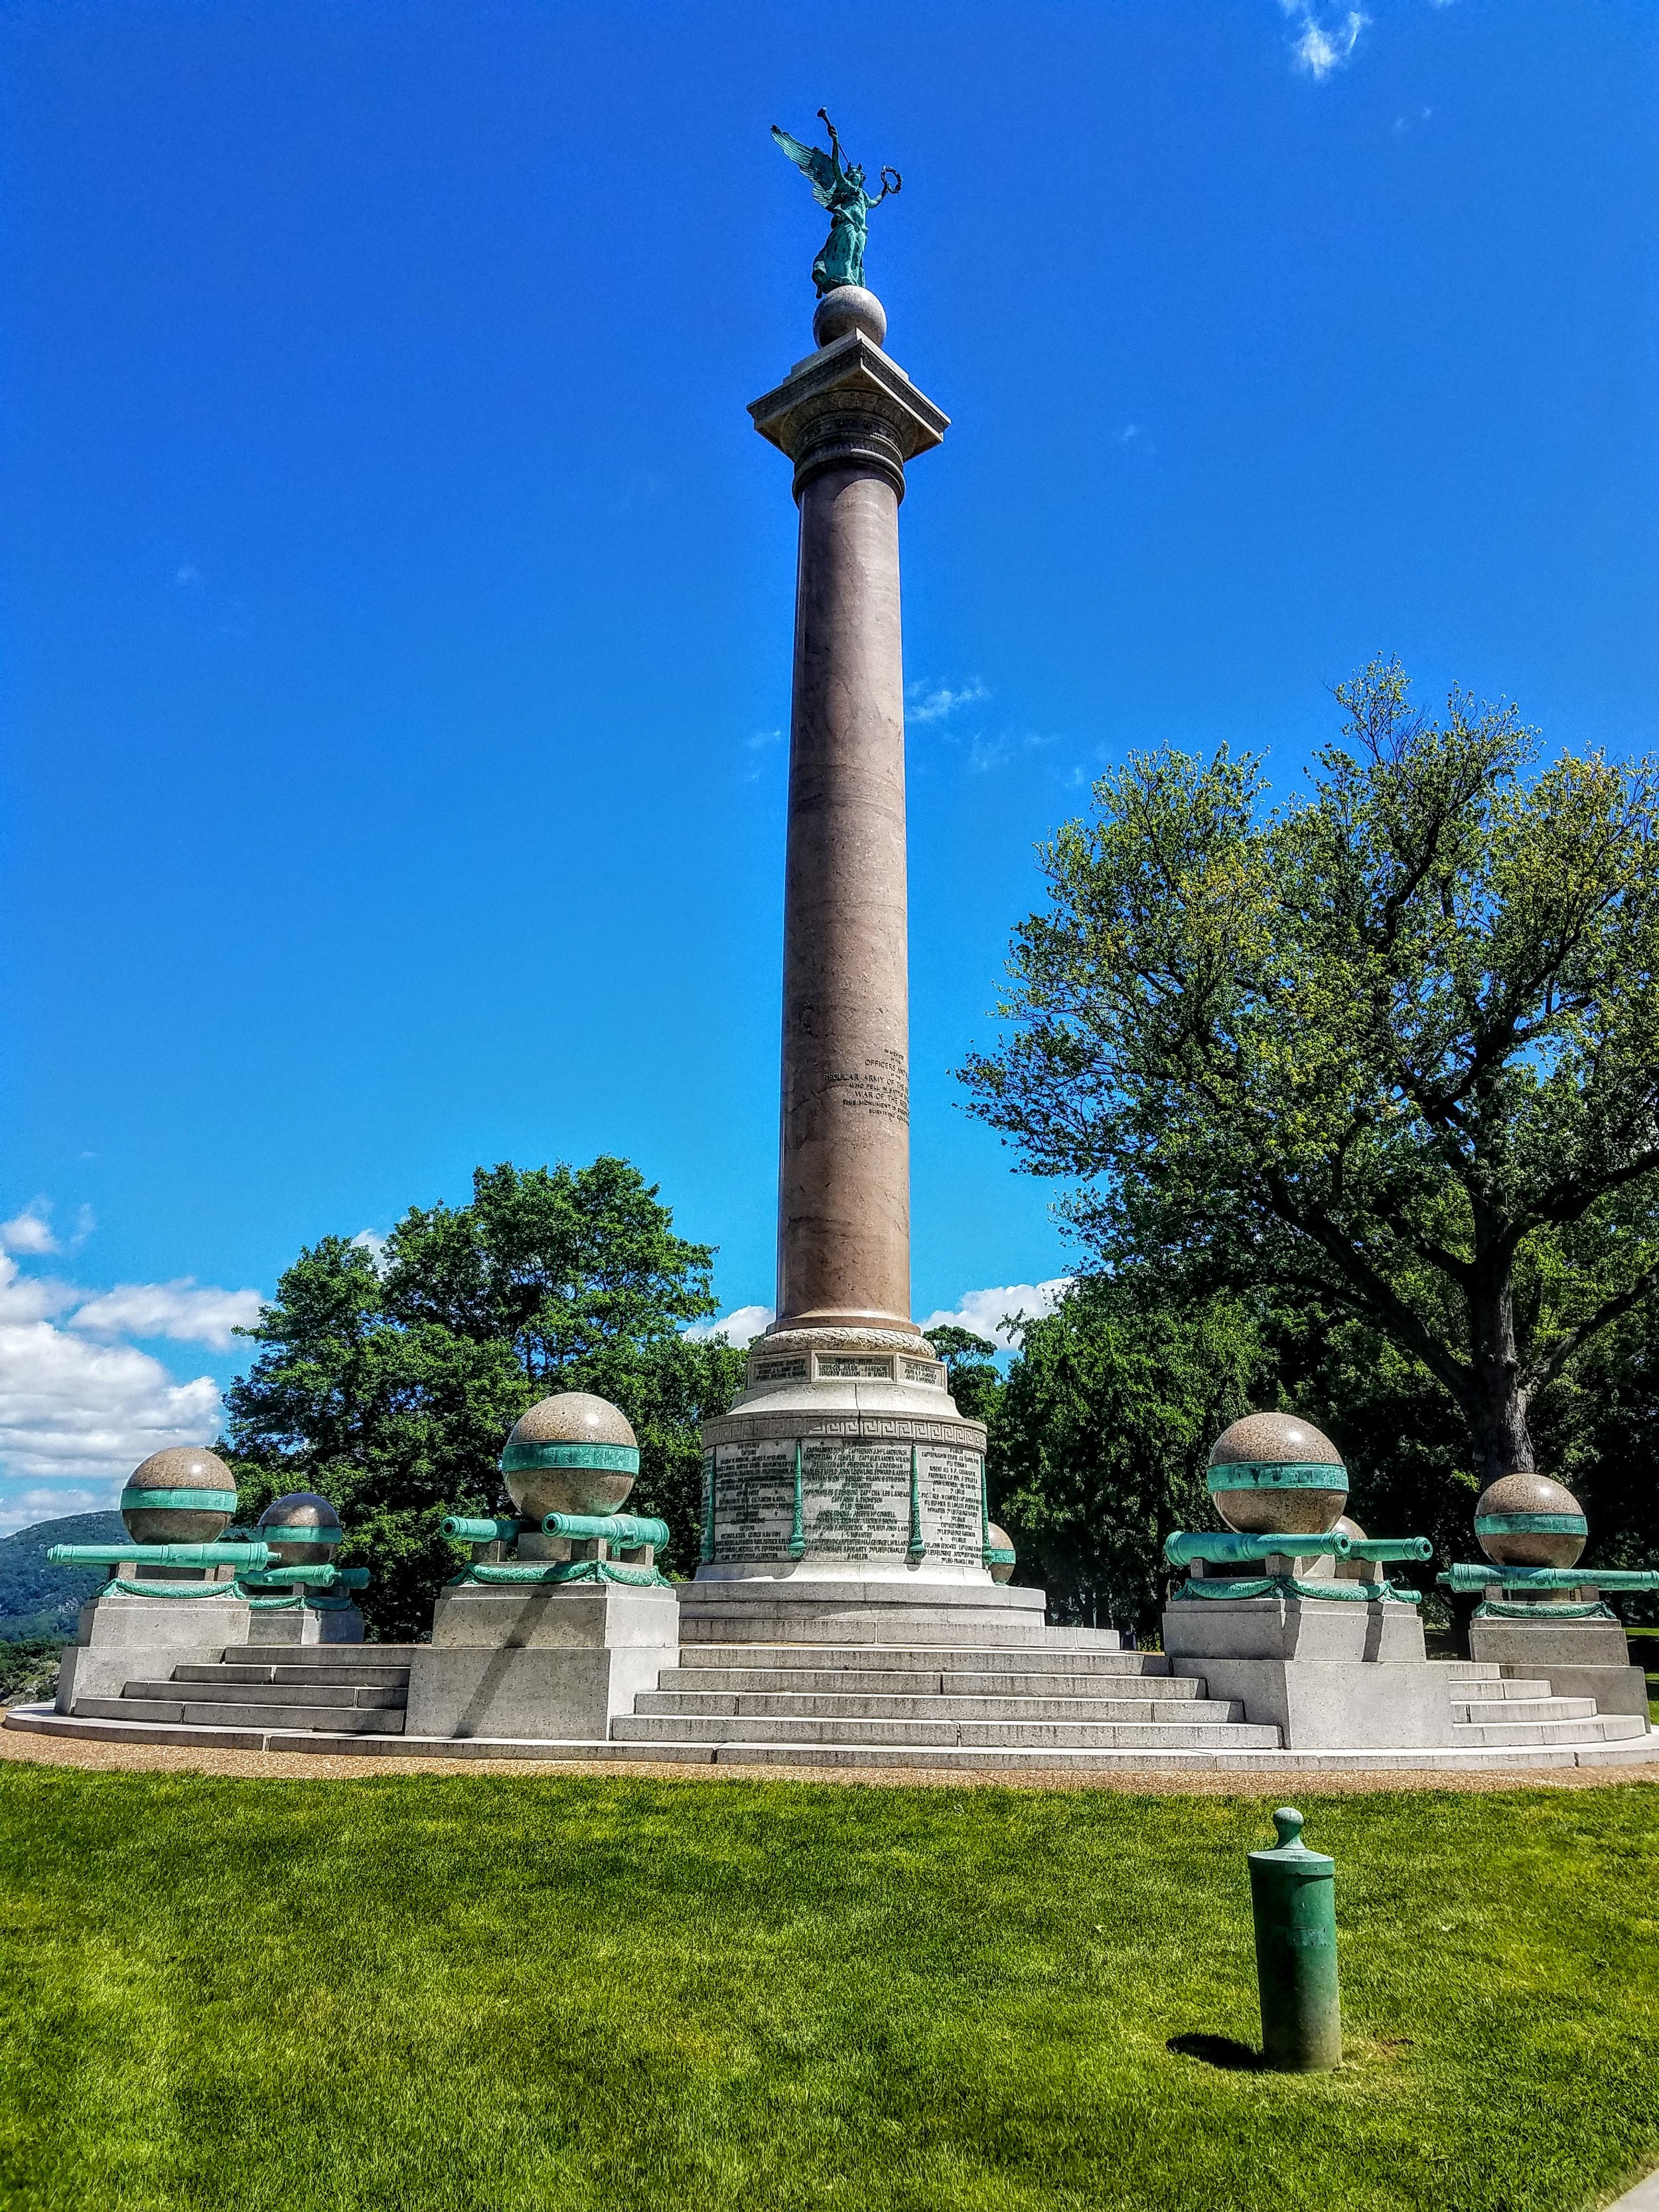 The memorial to the Civil War. When cadets graduated from the academy they went on to protect the North or the South. Eventually having to fight their fellow class mate. The cannons around the perimeter of this memorial are placed muzzle down to signify a hopeful end to ever having this take place again.